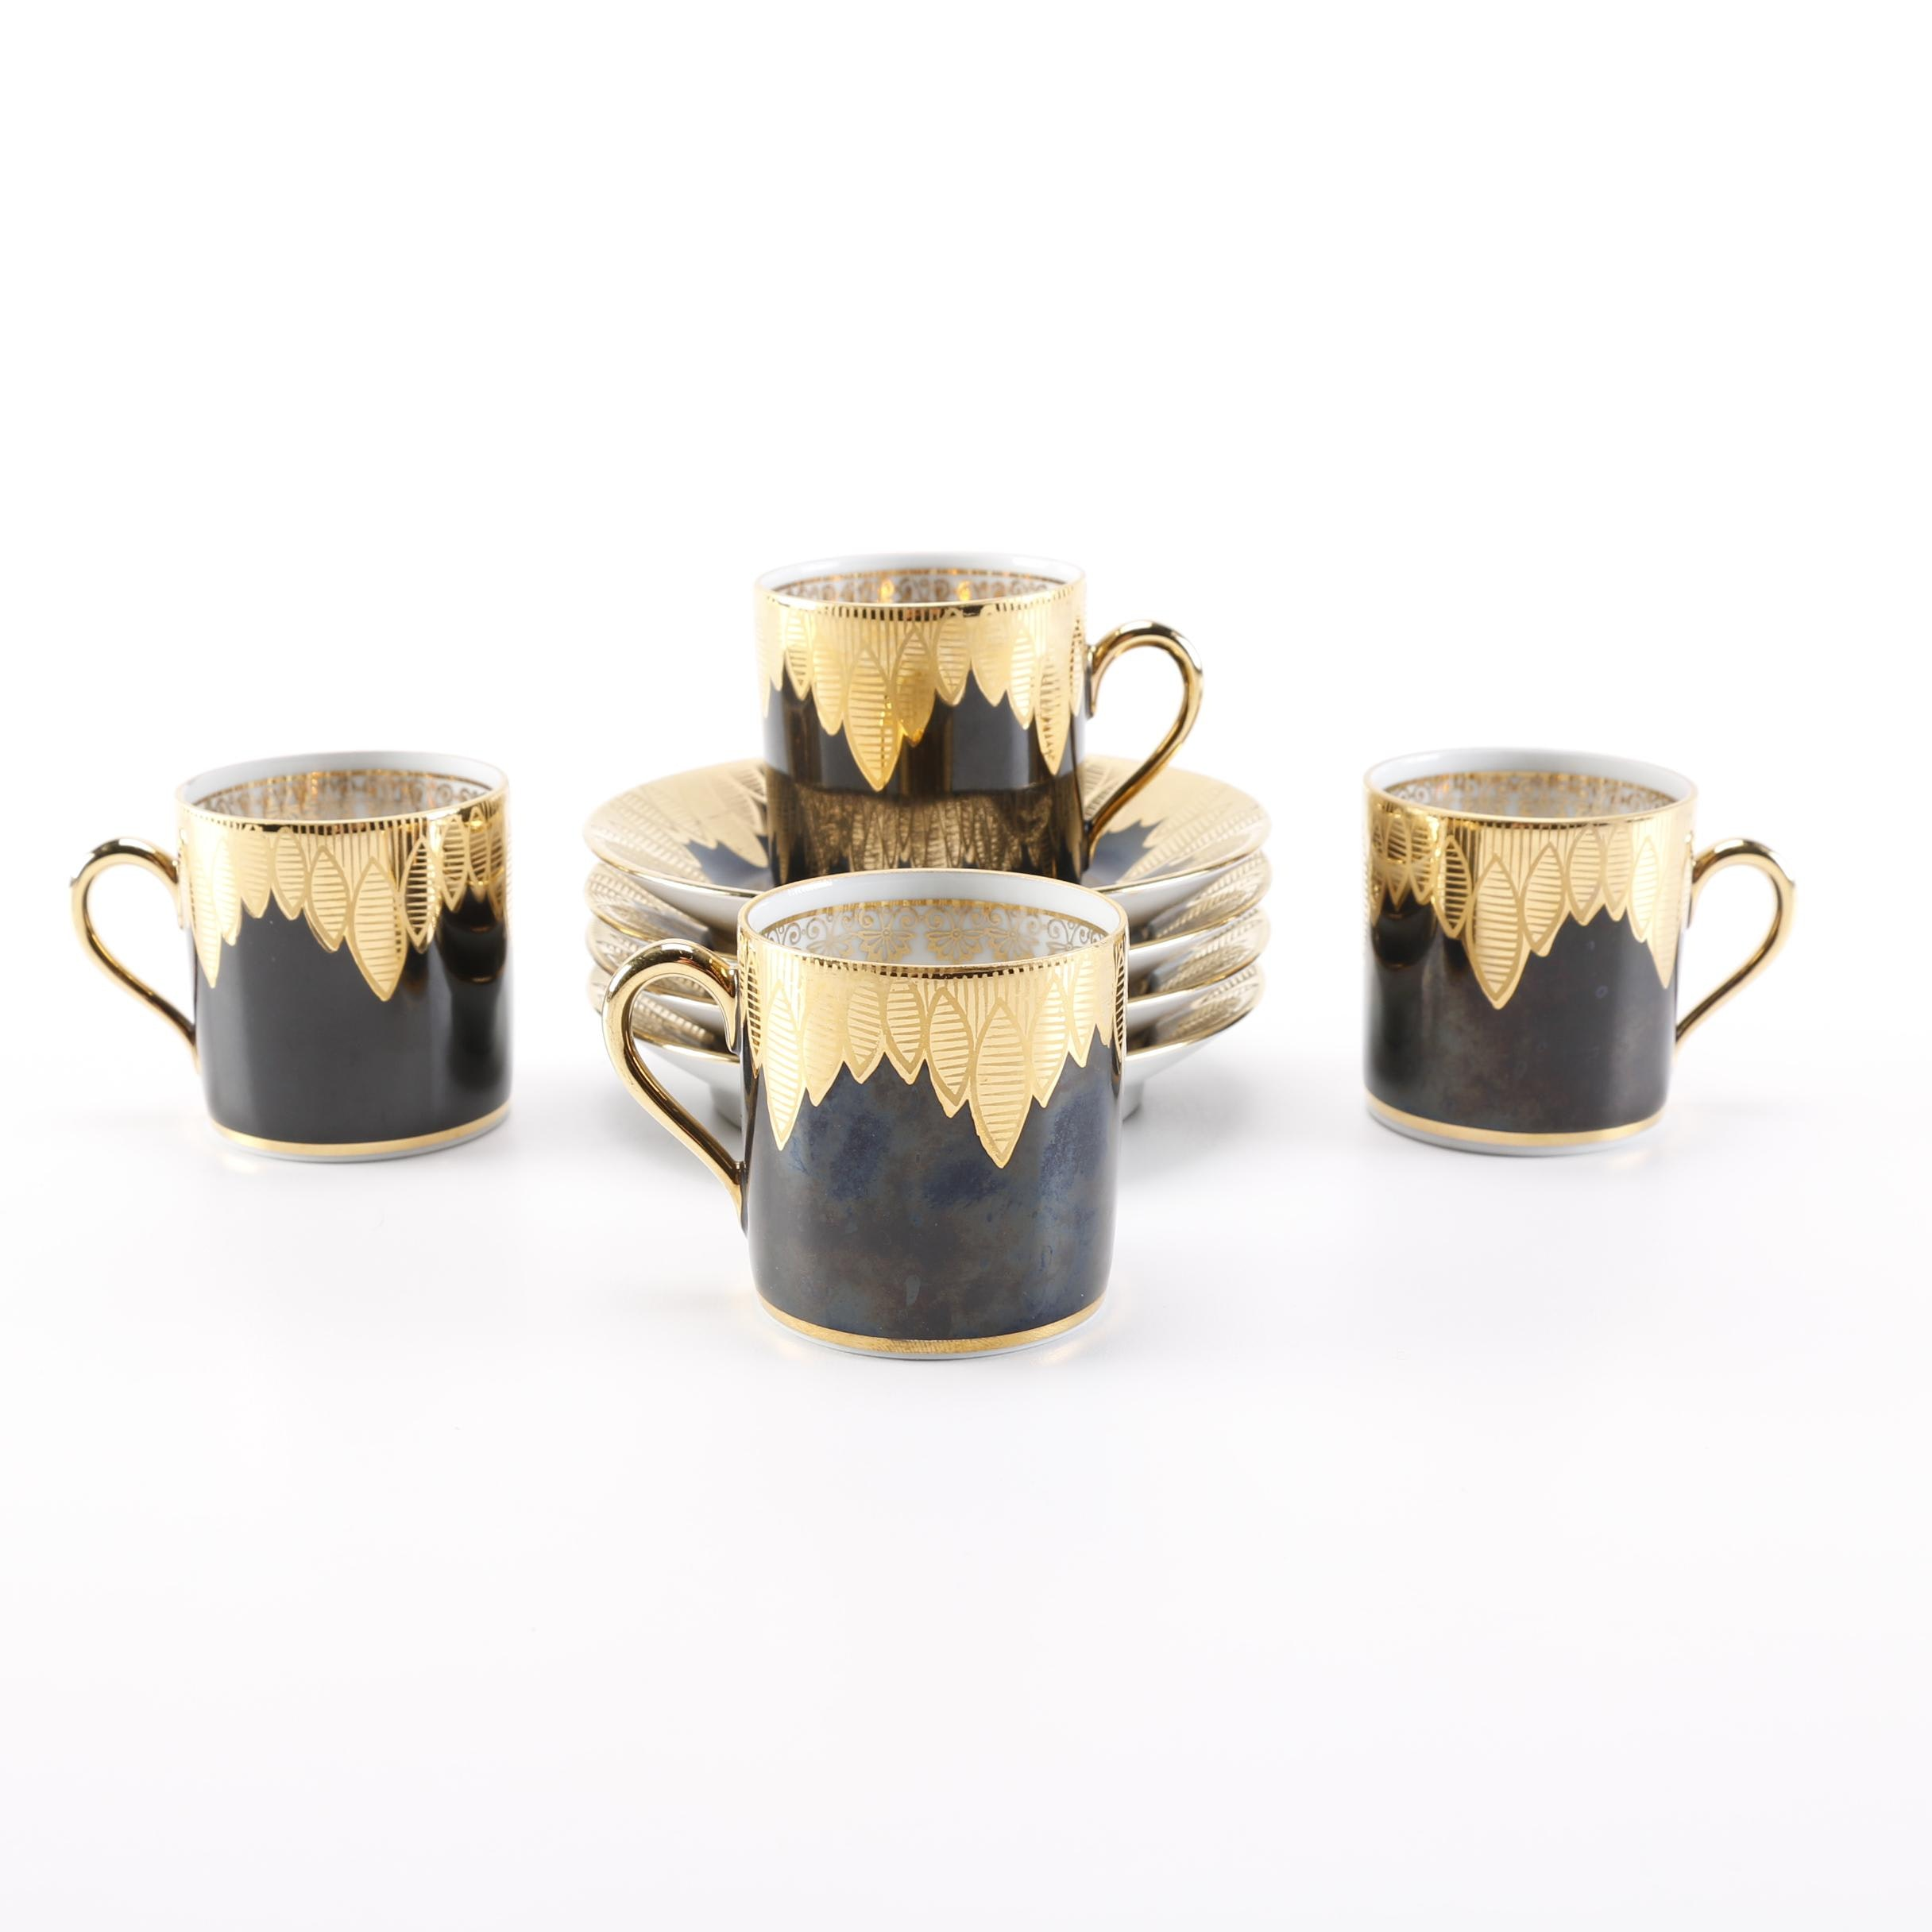 Rudolph Wachter Bavarian Porcelain Mugs and Saucers